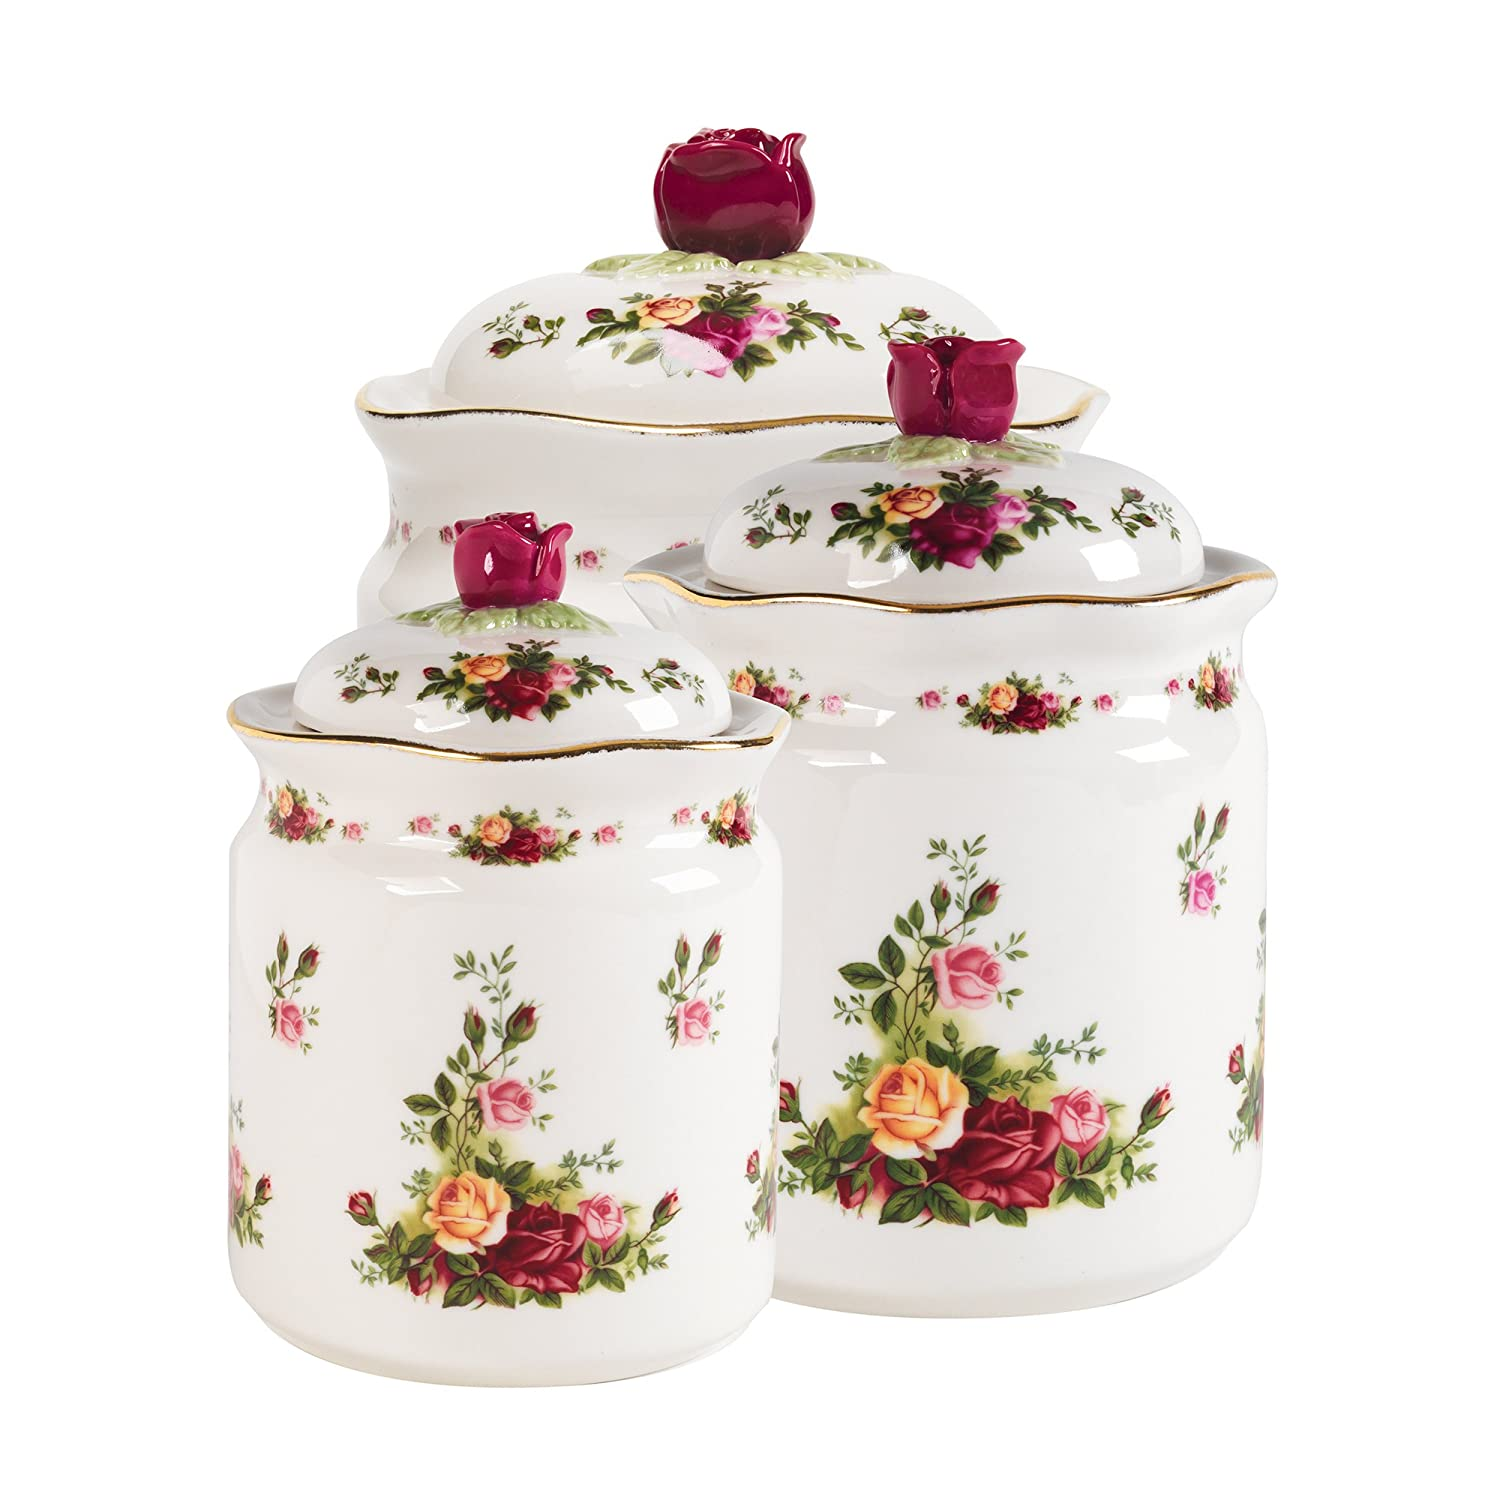 amazon com royal albert old country roses canisters set of 3 amazon com royal albert old country roses canisters set of 3 cookie jars kitchen dining